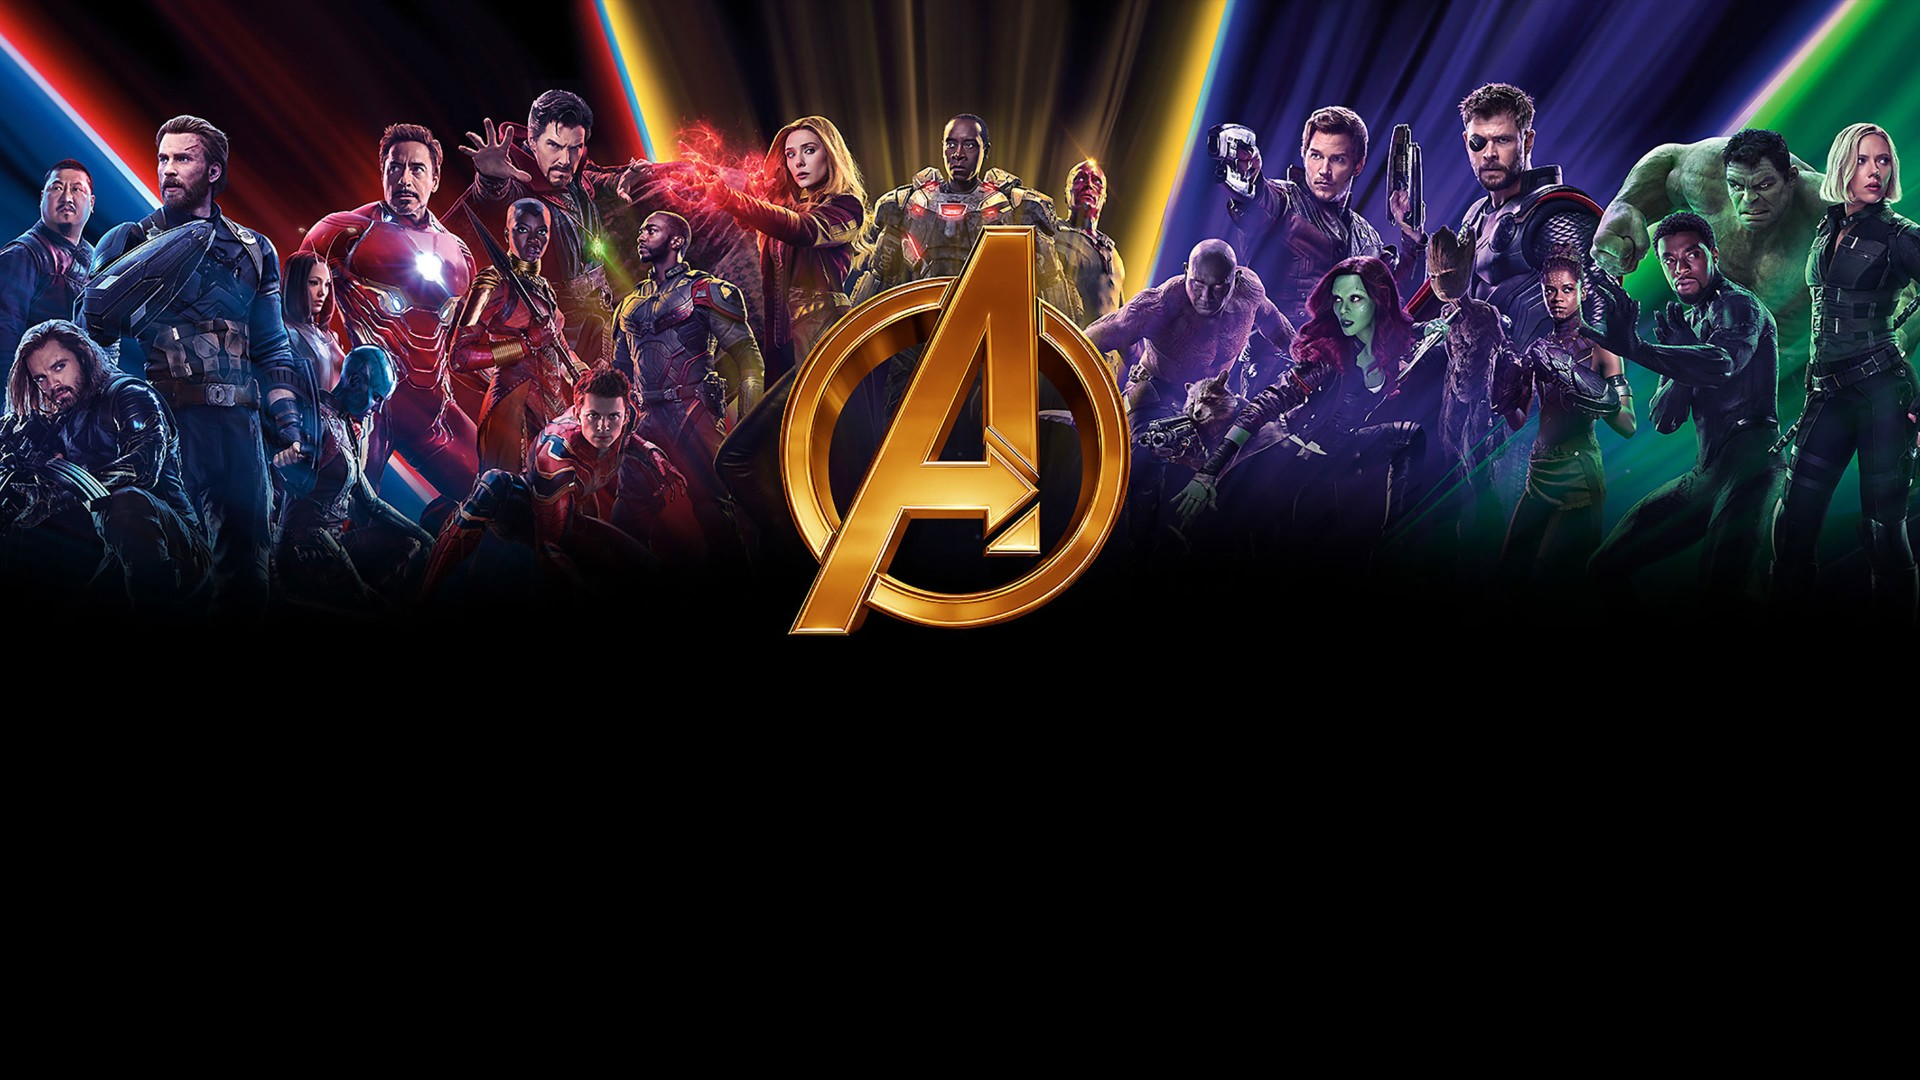 Avengers Infinity War 4k 1920x1080 1080p Wallpaper The Hot Desktop Wallpapers And Backgrounds For Your Pc And Mobile